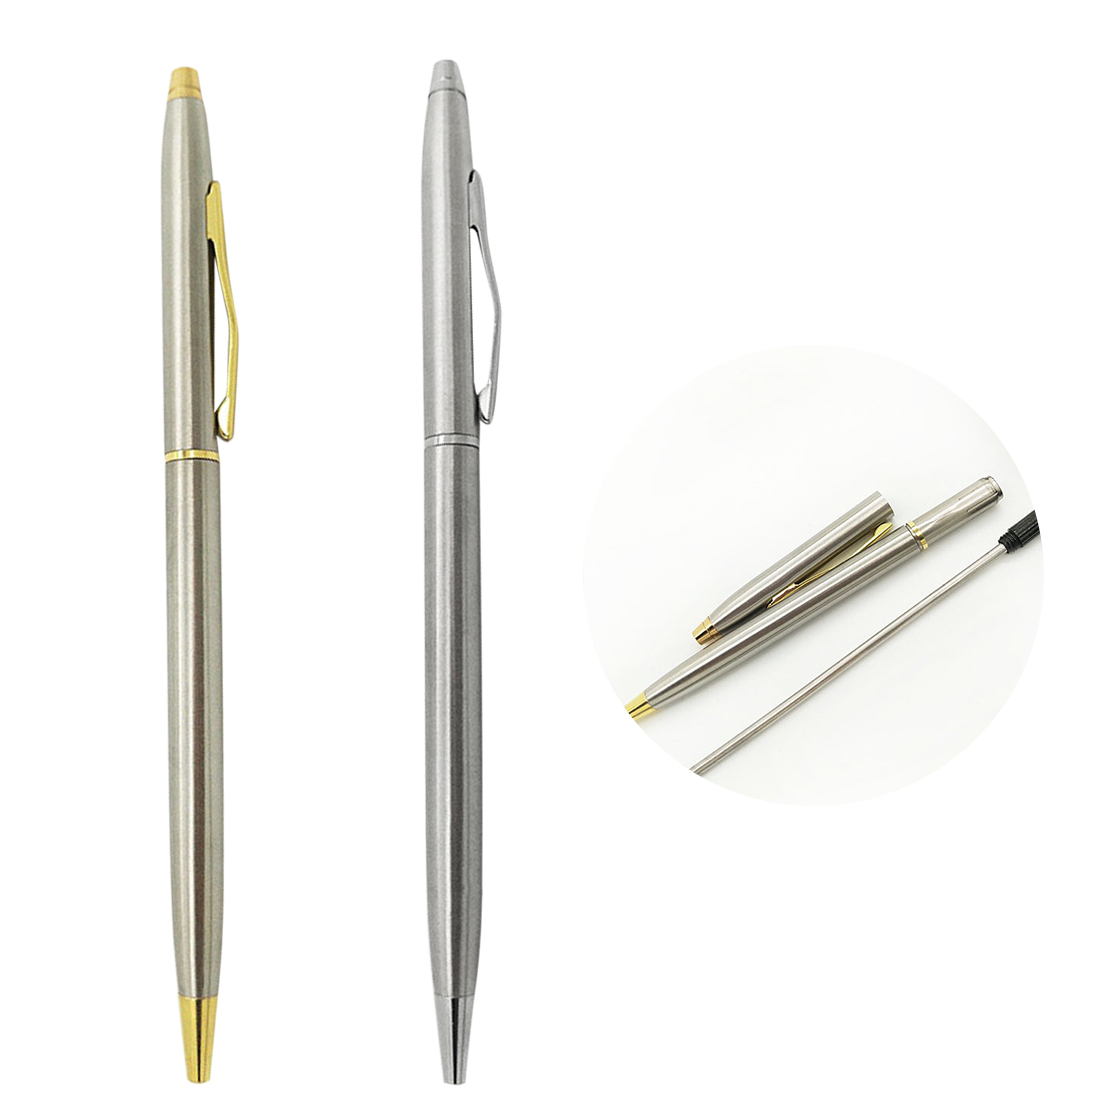 Loyal Fangnymph Stainless Steel Rotating Metal Ballpoint Pen Stationery Ballpen 0.7mm Black Pen Office & School Supplies Delicacies Loved By All Pens, Pencils & Writing Supplies